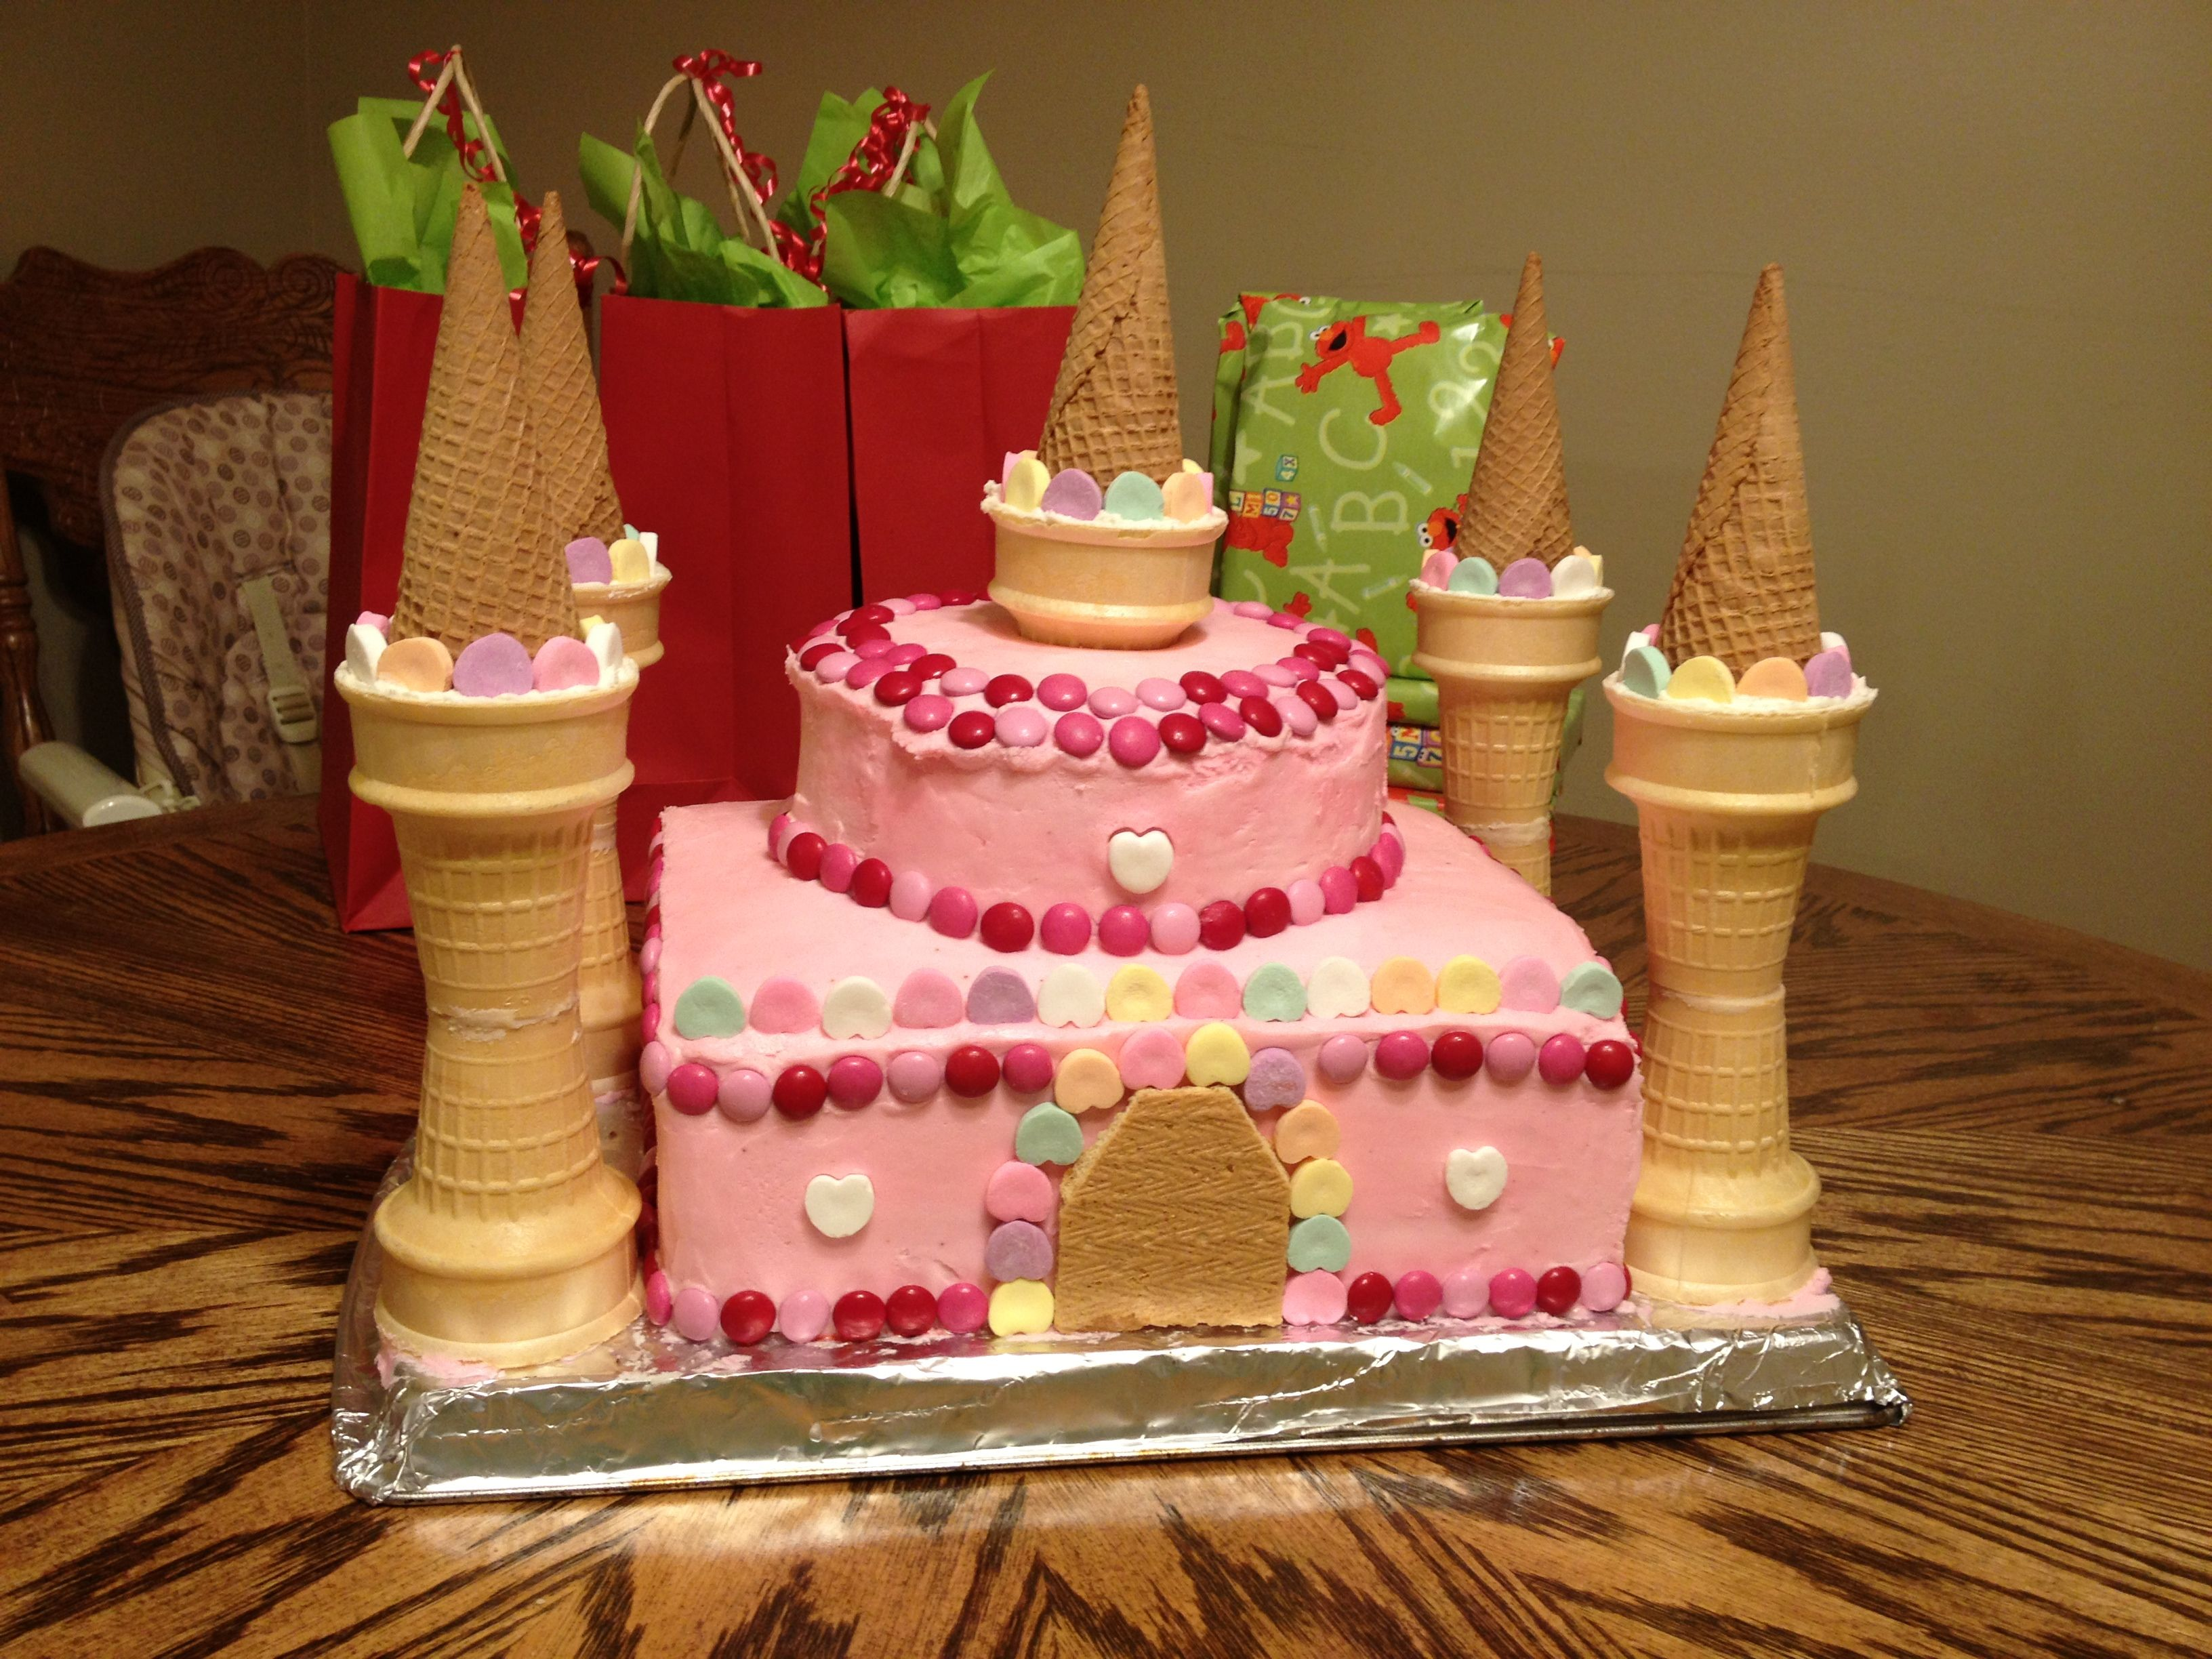 Easy To Assemble Pink Princess Castle Cake Just The